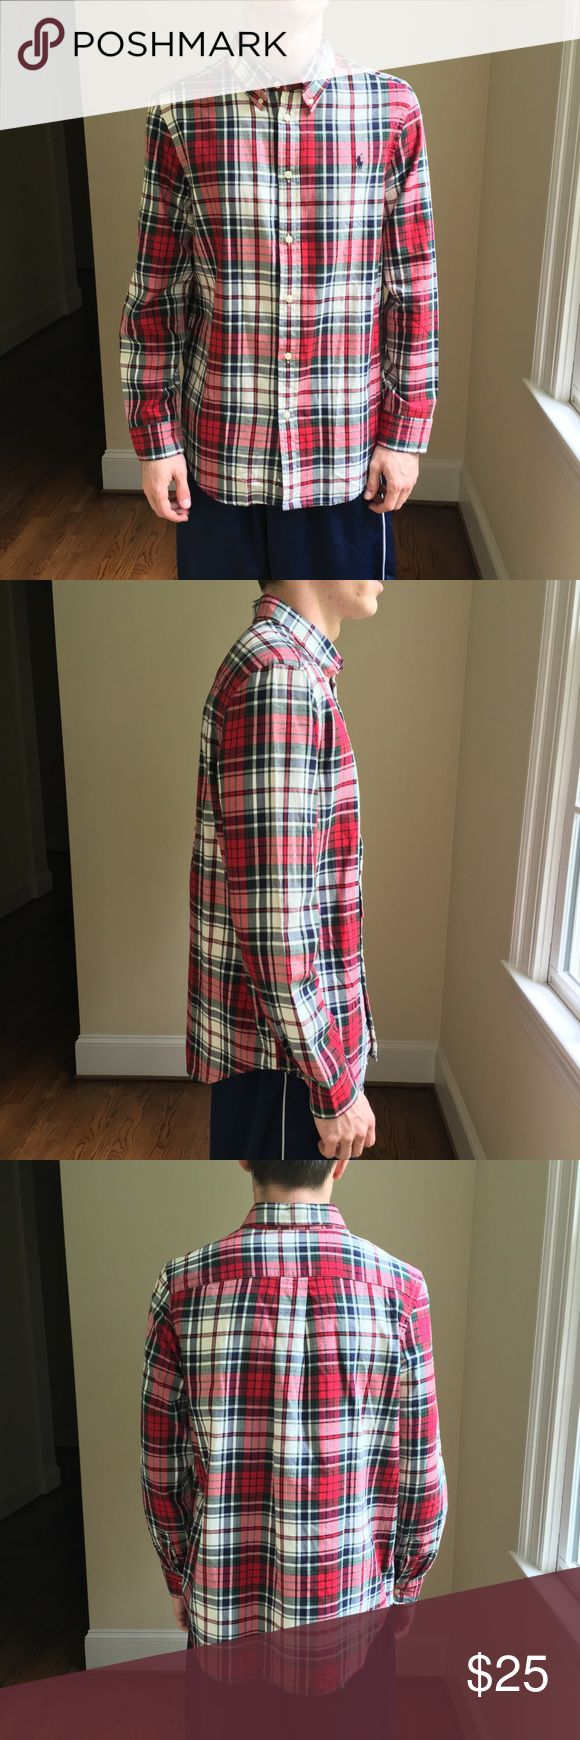 Ralph Lauren Plaid Button Down Shirt NWT Fantastic brand new with tags Ralph Lauren plaid button down shirt.  Size XL (18-20) boys, but will also fit a thin teen.  Model is 18yo and 5ft 11in size small.  Perfect colors for the upcoming Christmas season and a great shirt for year around use. Ralph Lauren Shirts & Tops Button Down Shirts